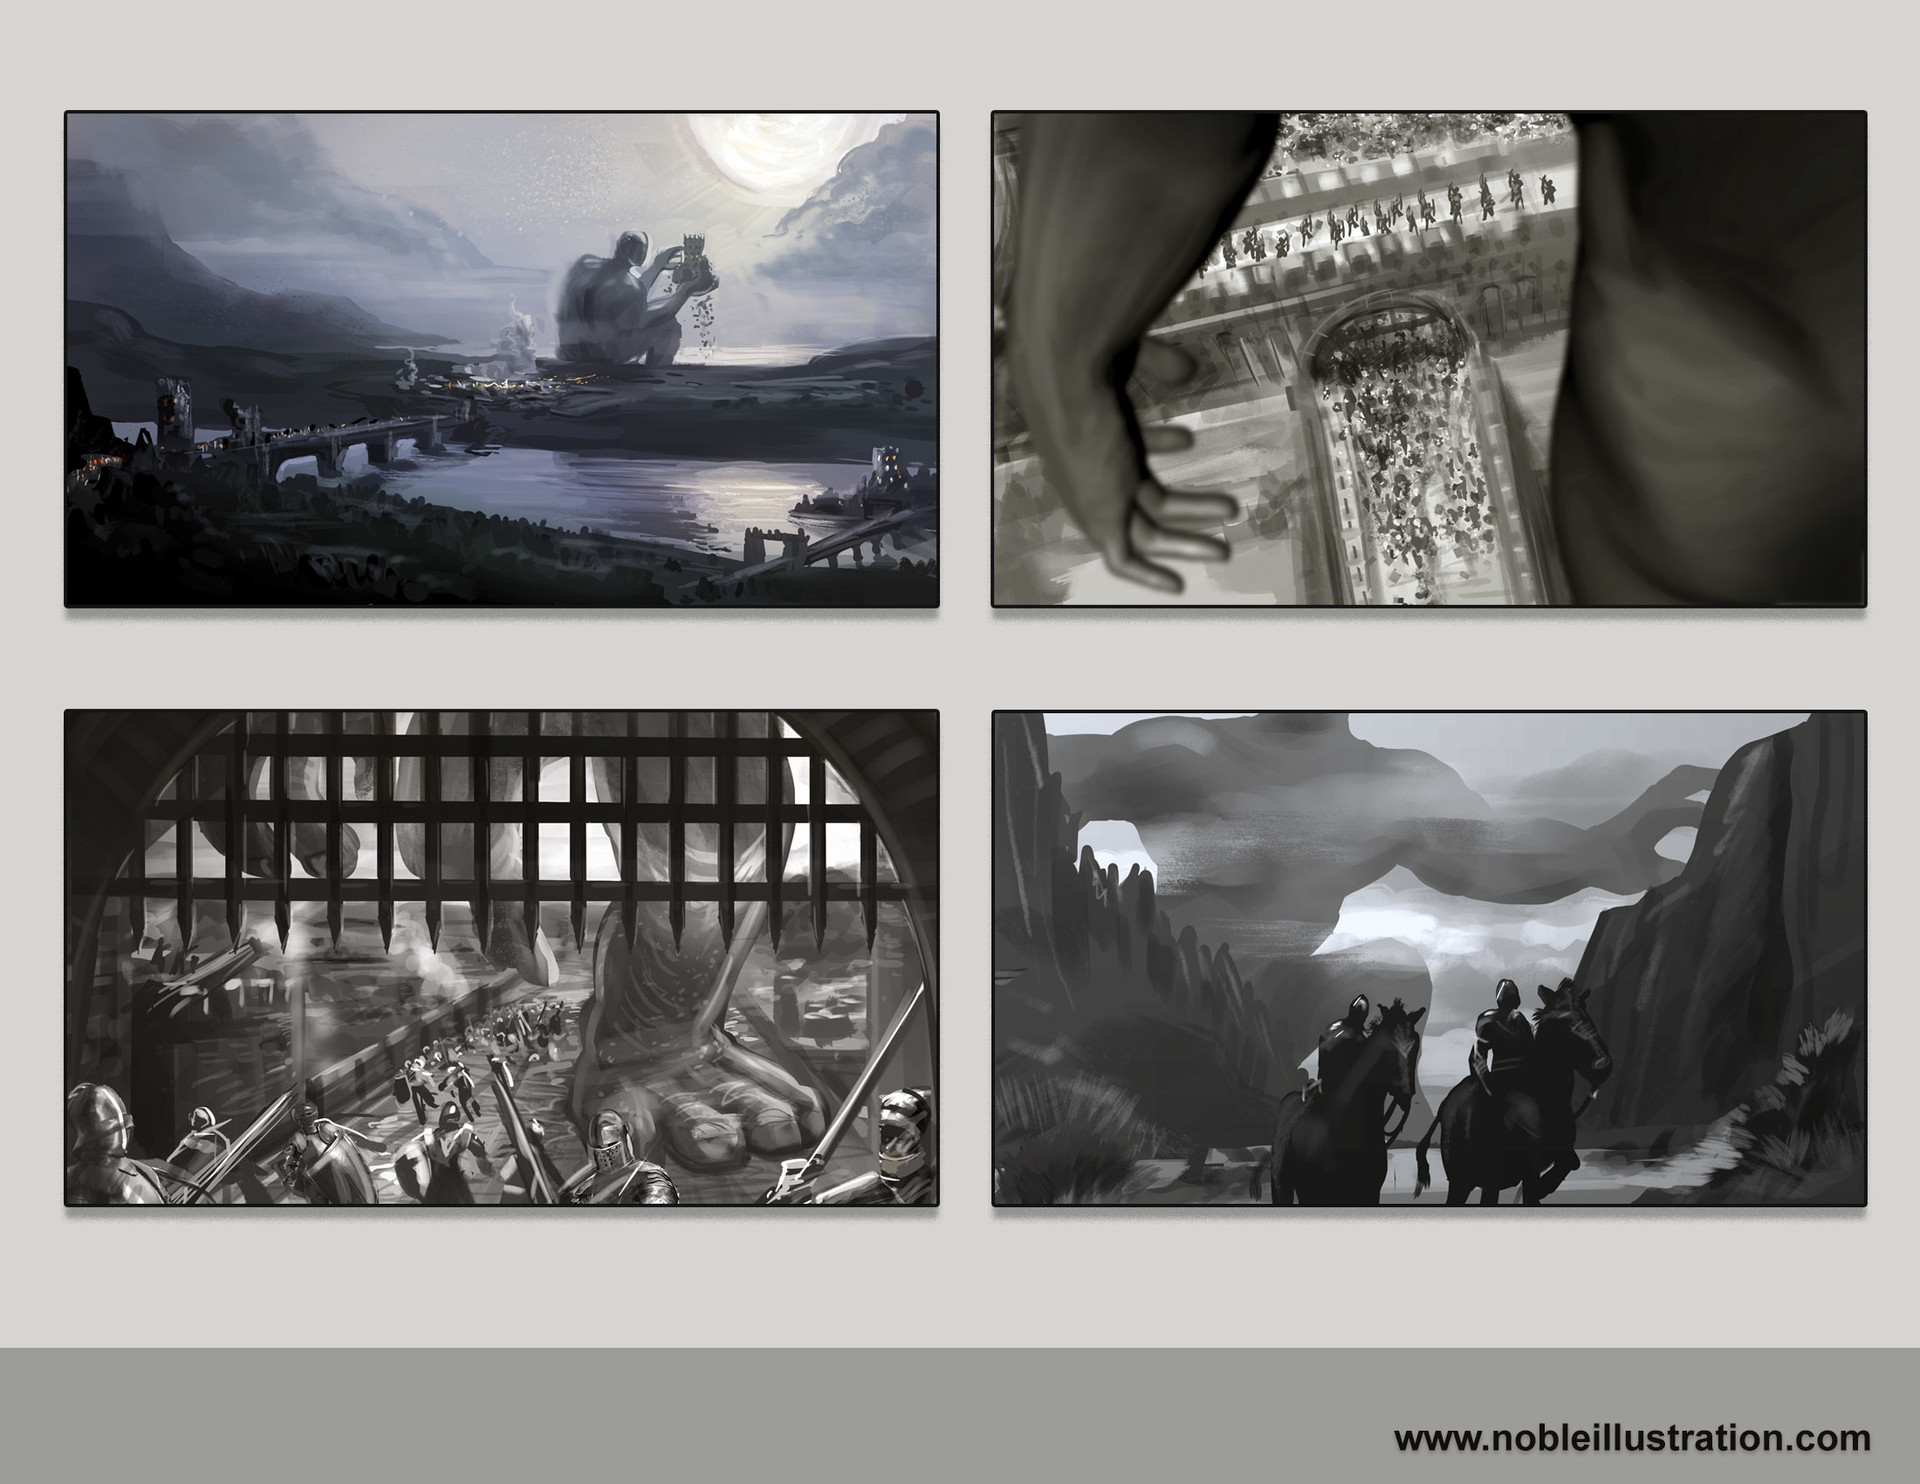 Stephen noble keyframes